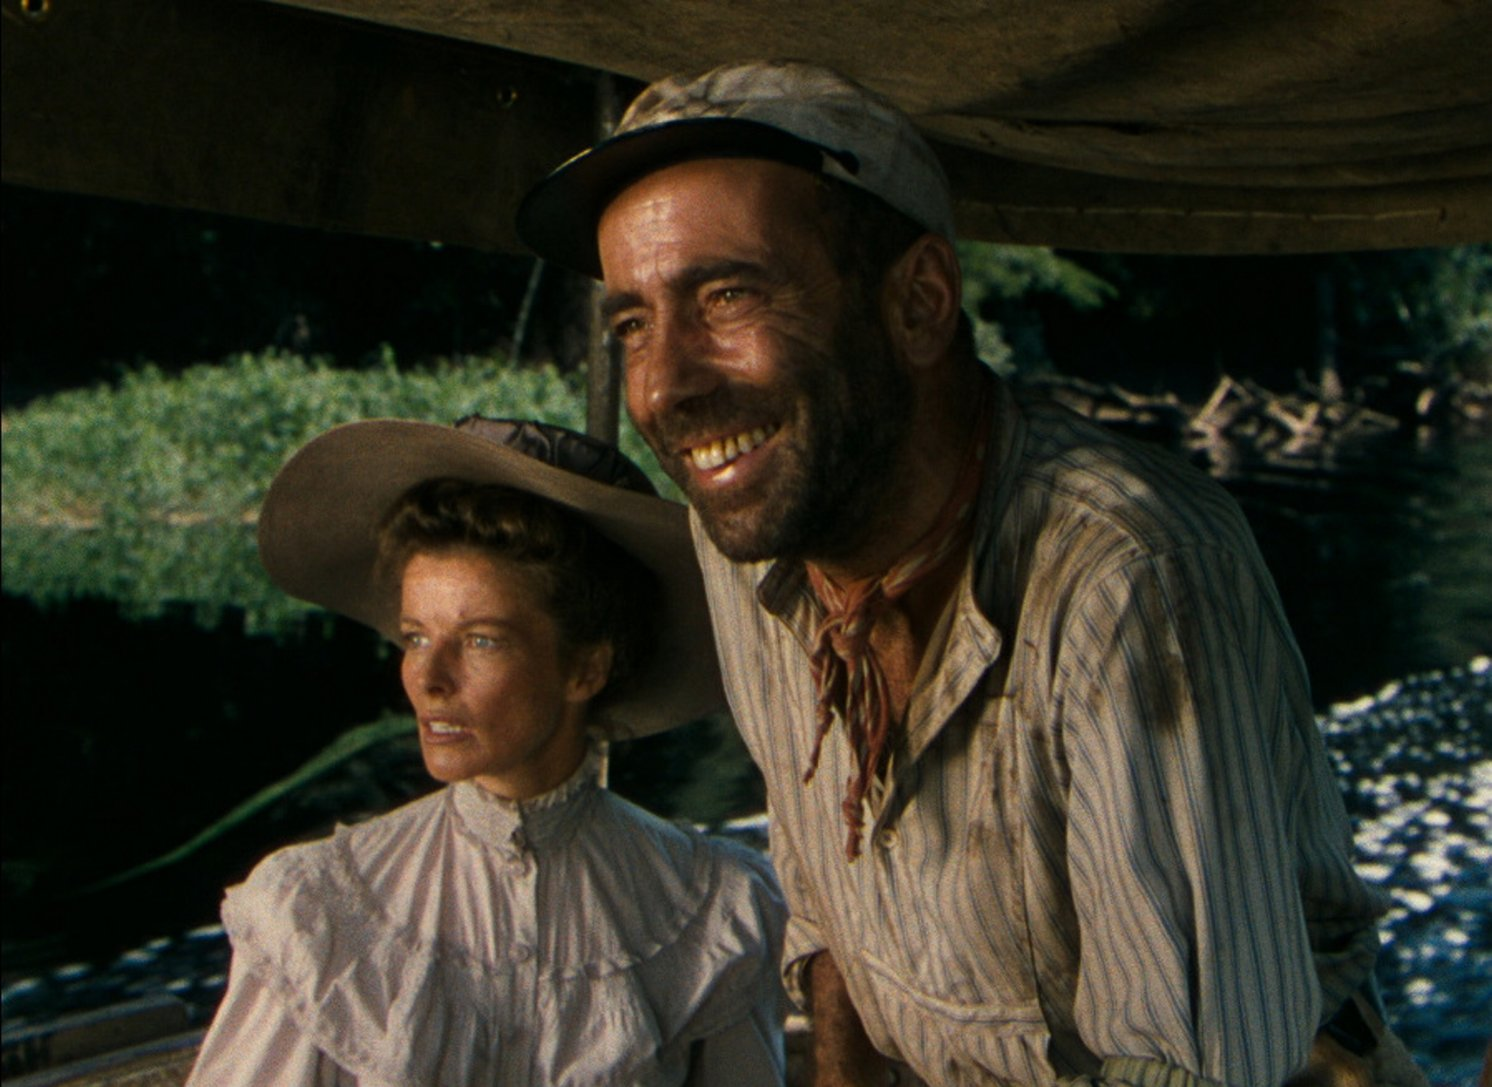 film reviews on the african queen The african queen (1951) the african queen (1951) full film hd - humphrey bogart, katharine hepburn, robert morley movies - duration: 2:11:42.